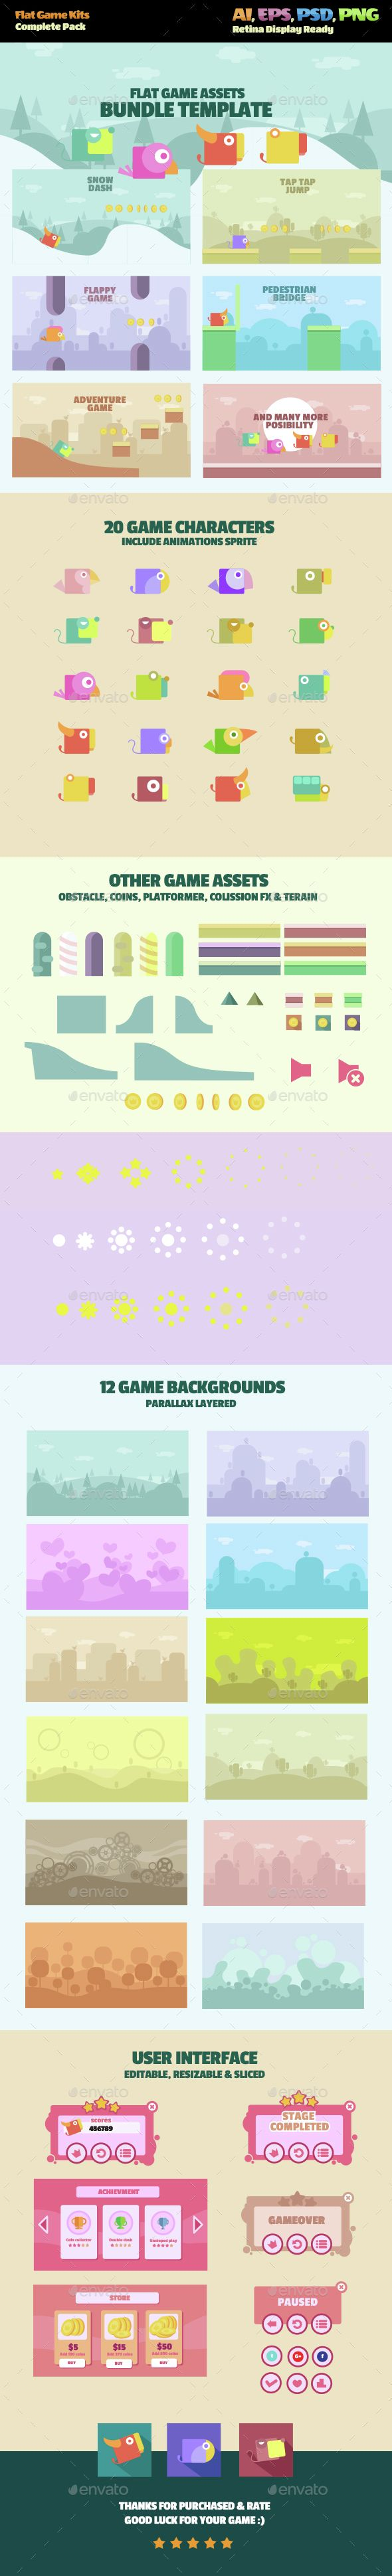 Flat Game Kit — Photoshop PSD #mobile game #2D game • Available here → https://graphicriver.net/item/flat-game-kit/14443129?ref=pxcr